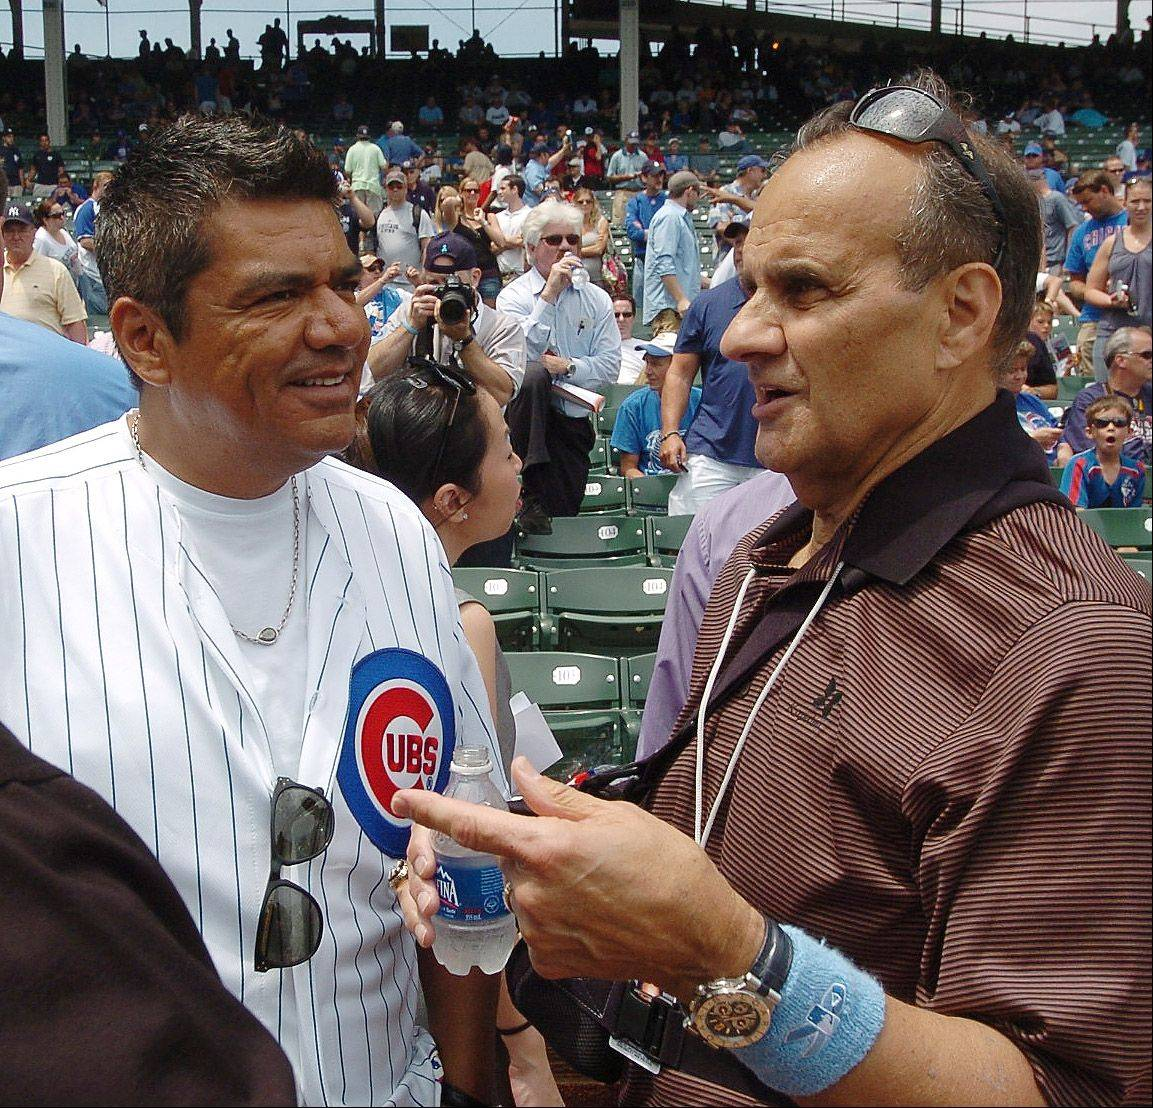 Joe Torre chats with comedian George Lopez, who threw out the first pitch at Cubs vs. Yankees at Wrigley Field.